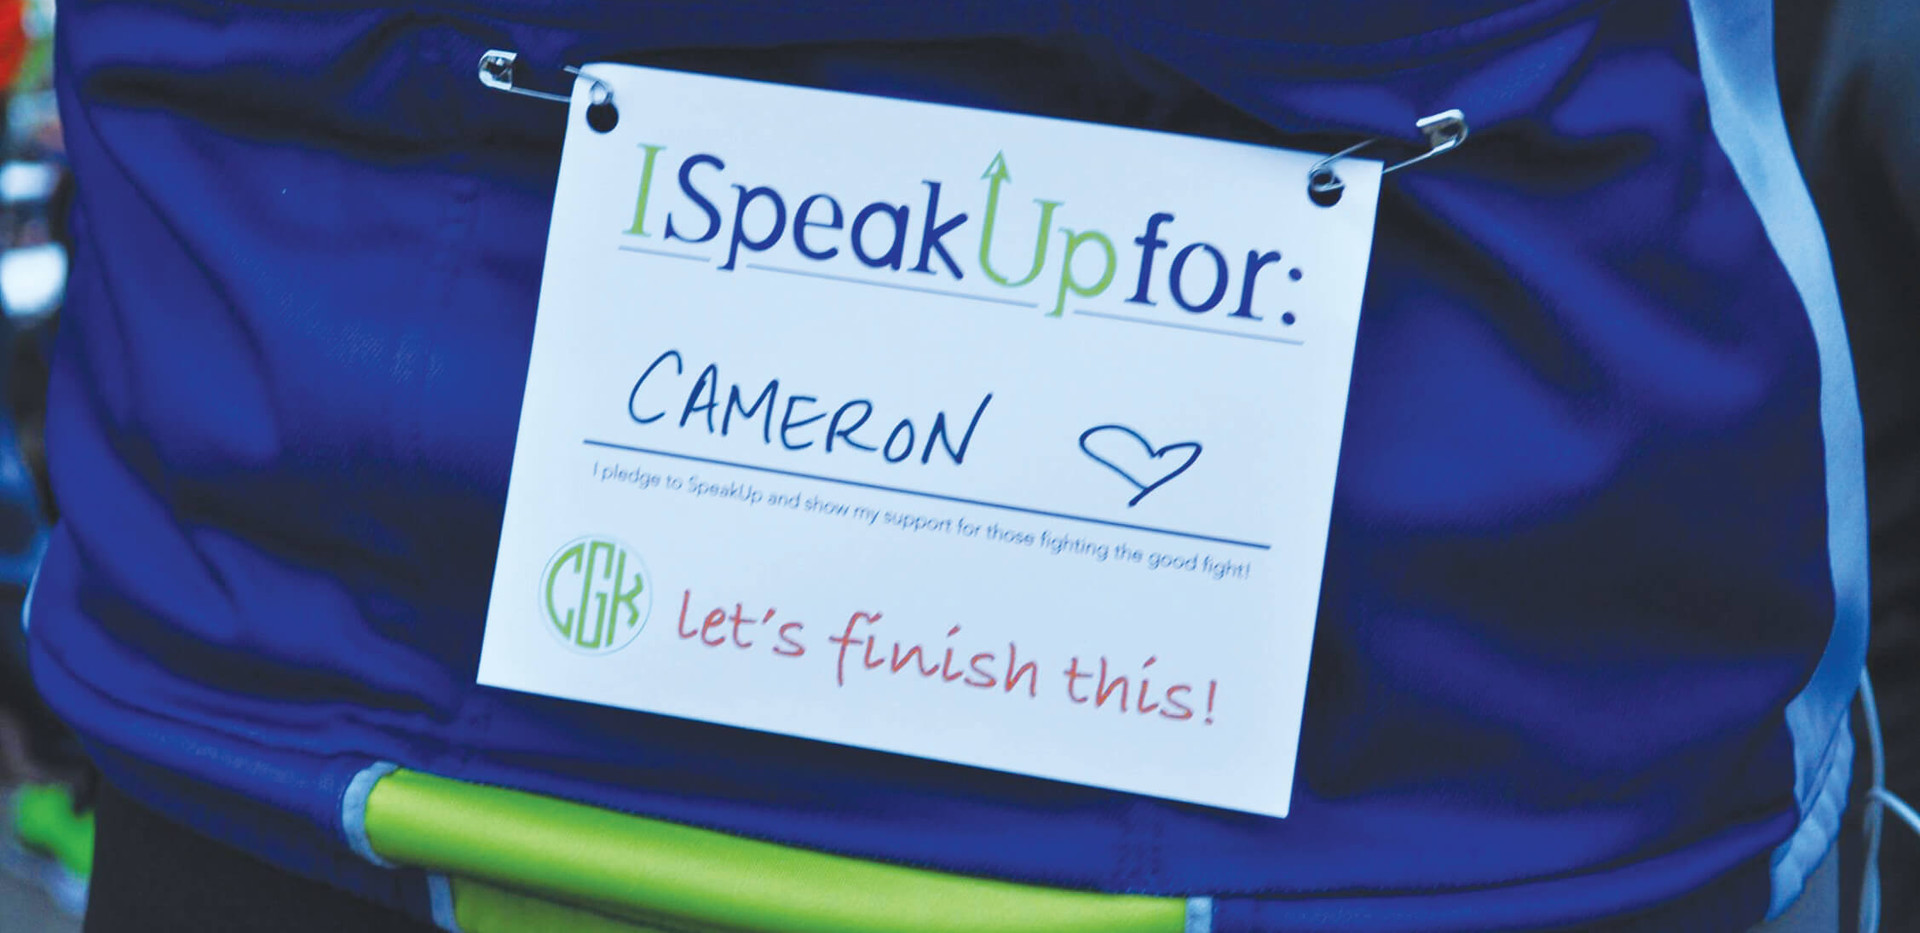 O I SpeakUp for Cameron.jpg